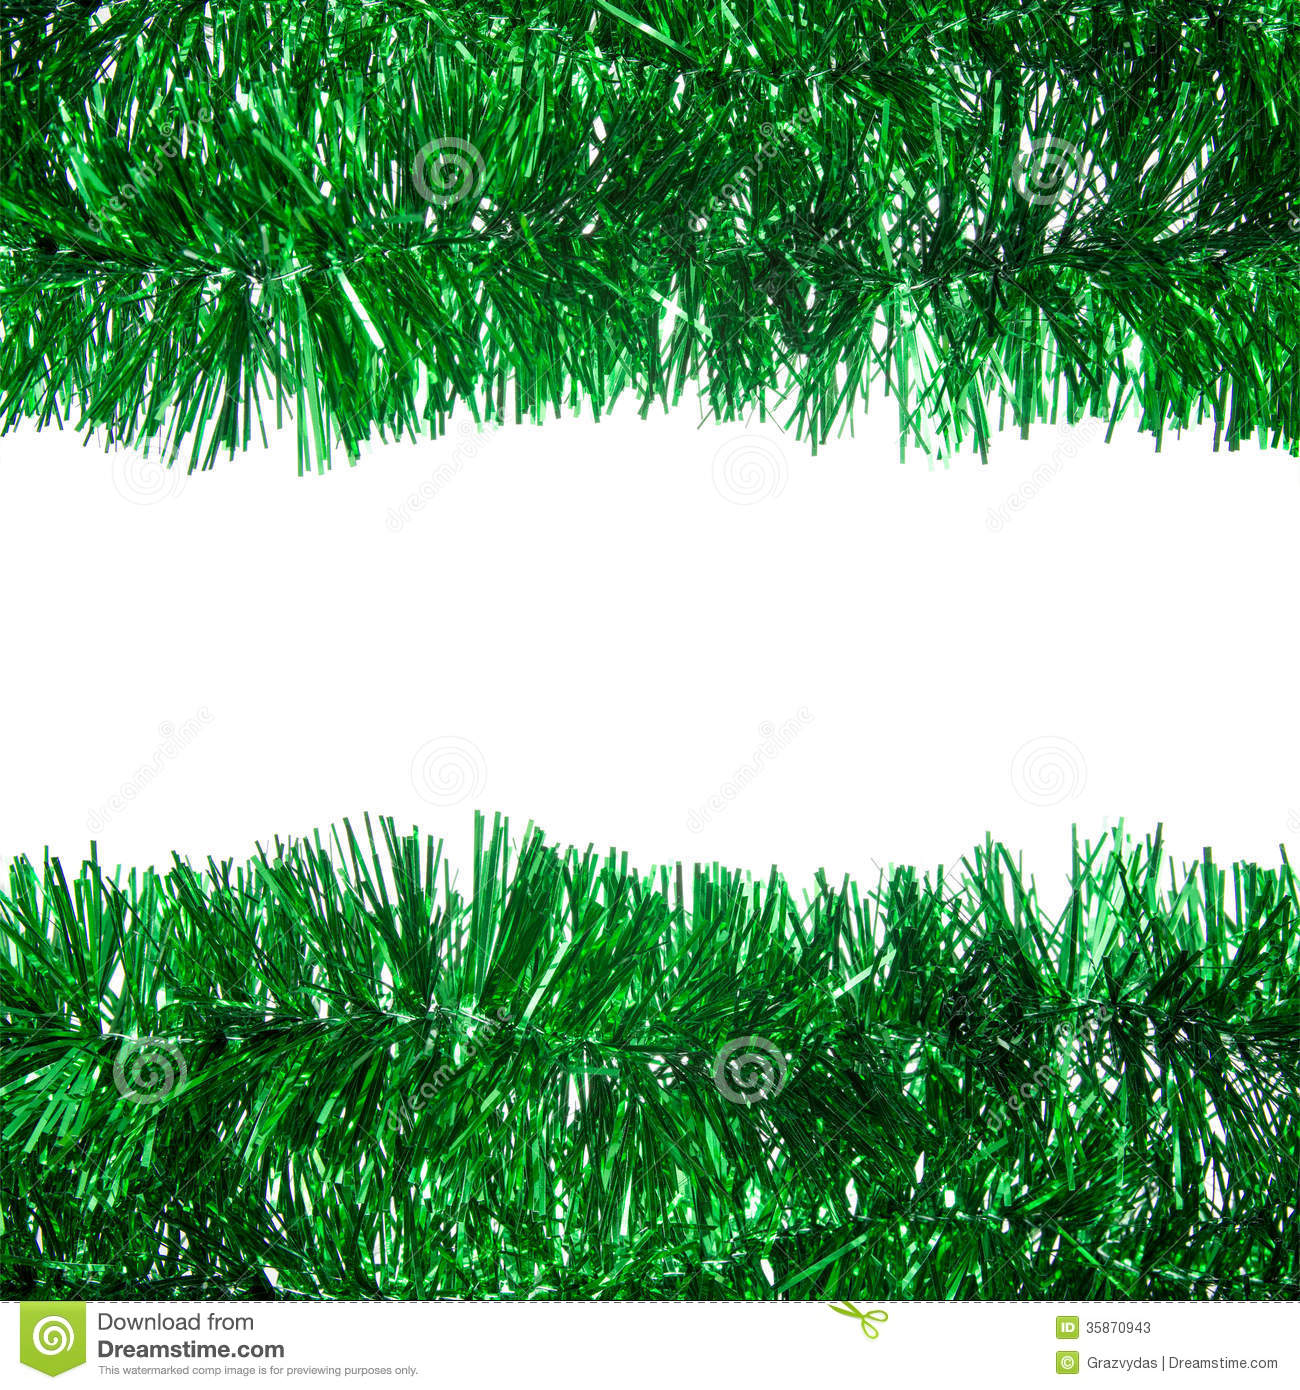 Green Tinsel Christmas Garland Stock Photo - Image: 62479307